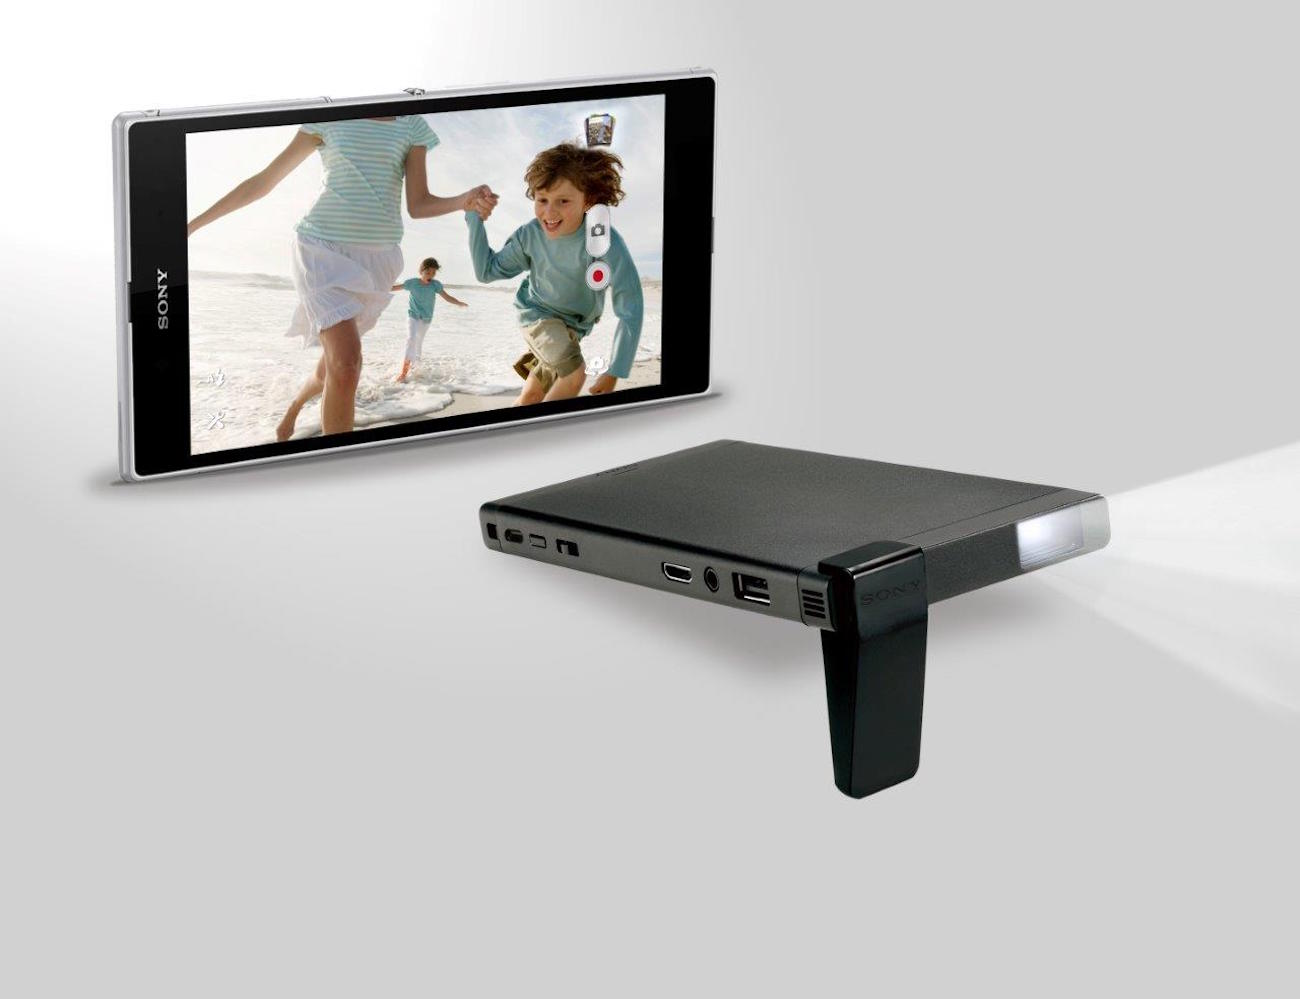 Sony hd pico mobile projector gadget flow for Hd pico projector